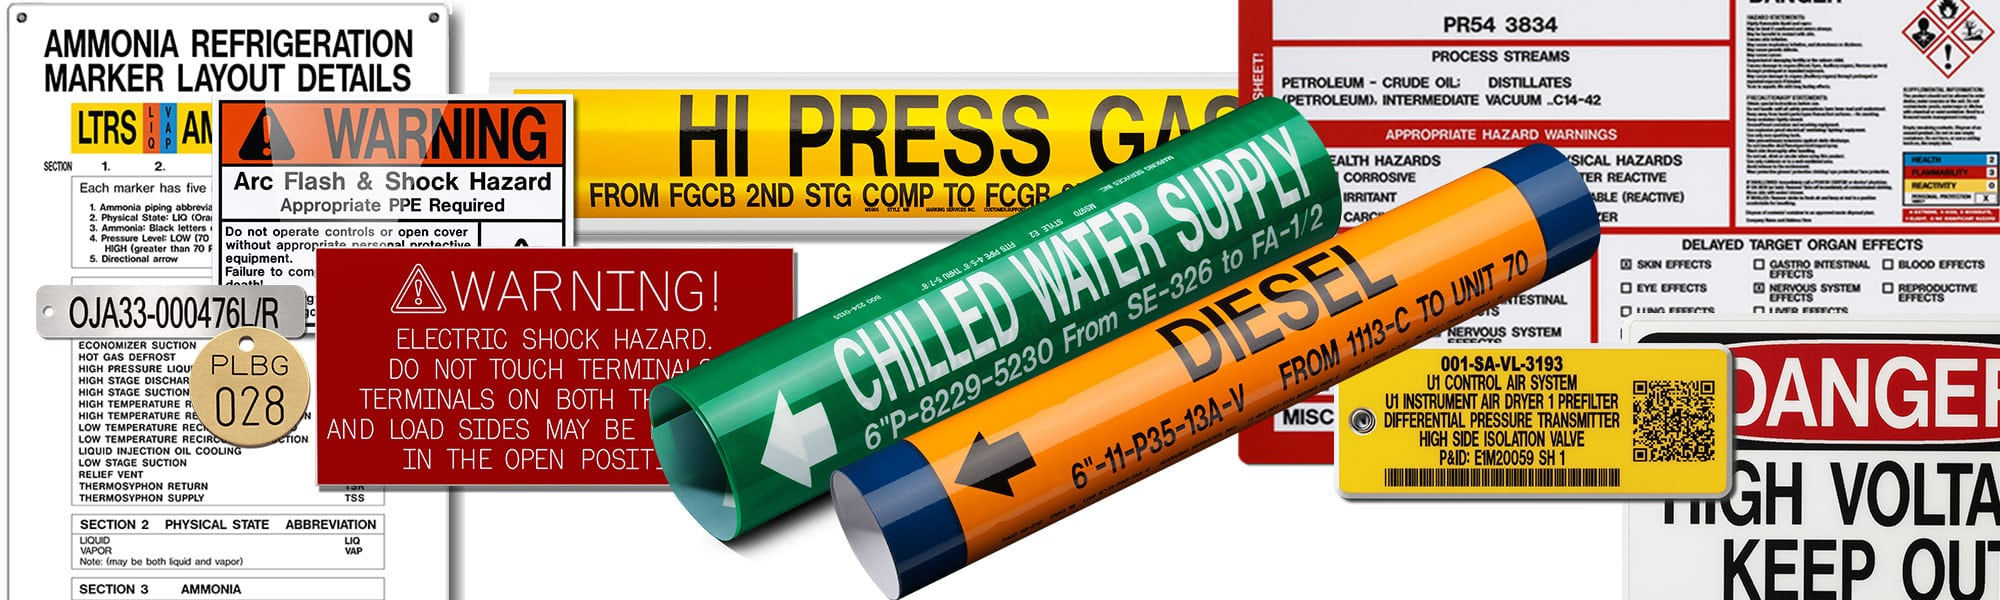 8e0911a3599 Custom-Stock-Products-Header-Marking-Services-Canada - Marking ...